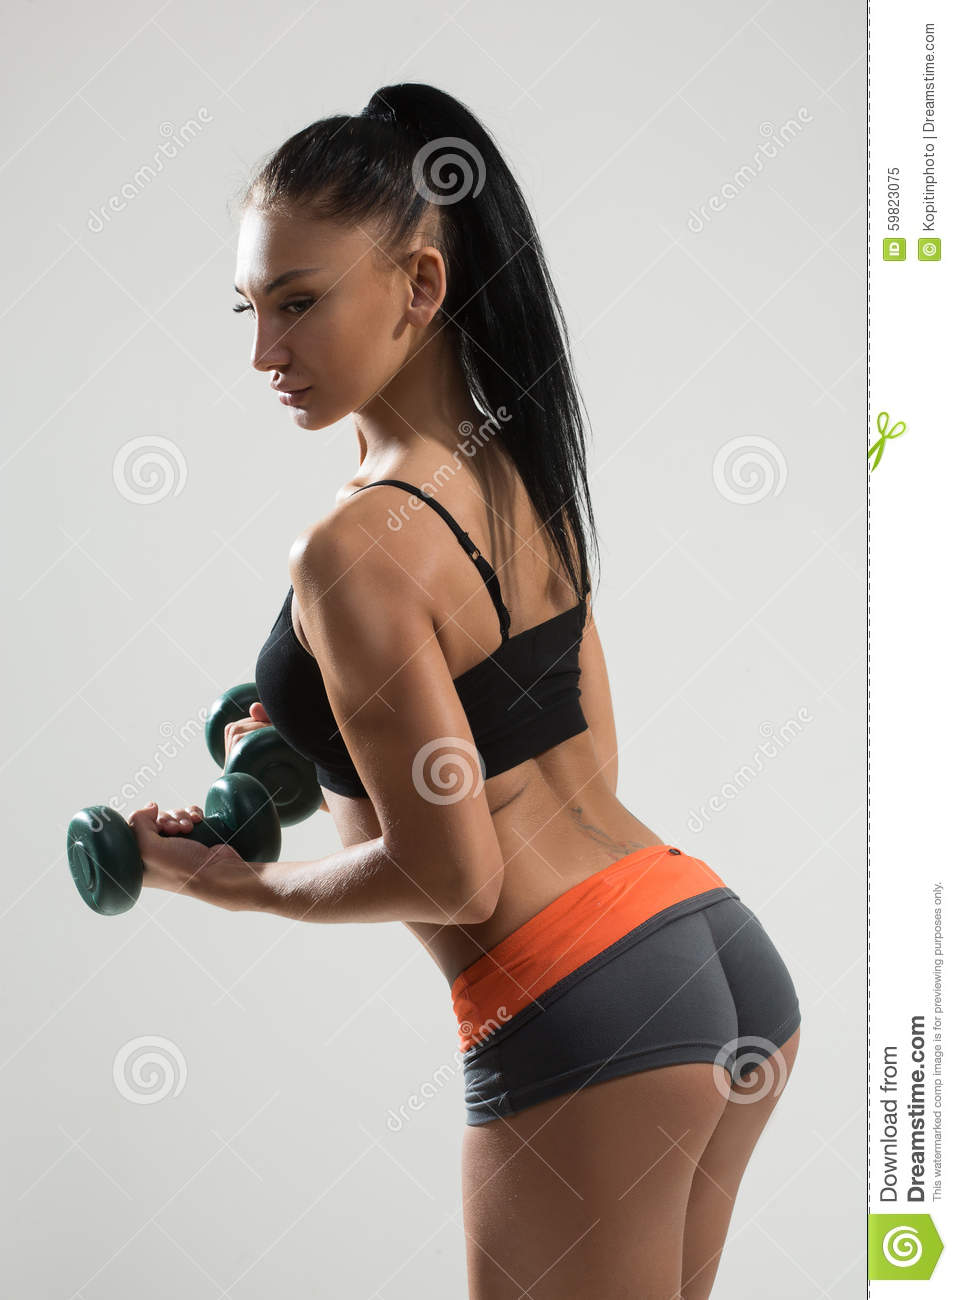 athletic woman with long hair working out stock image - image of